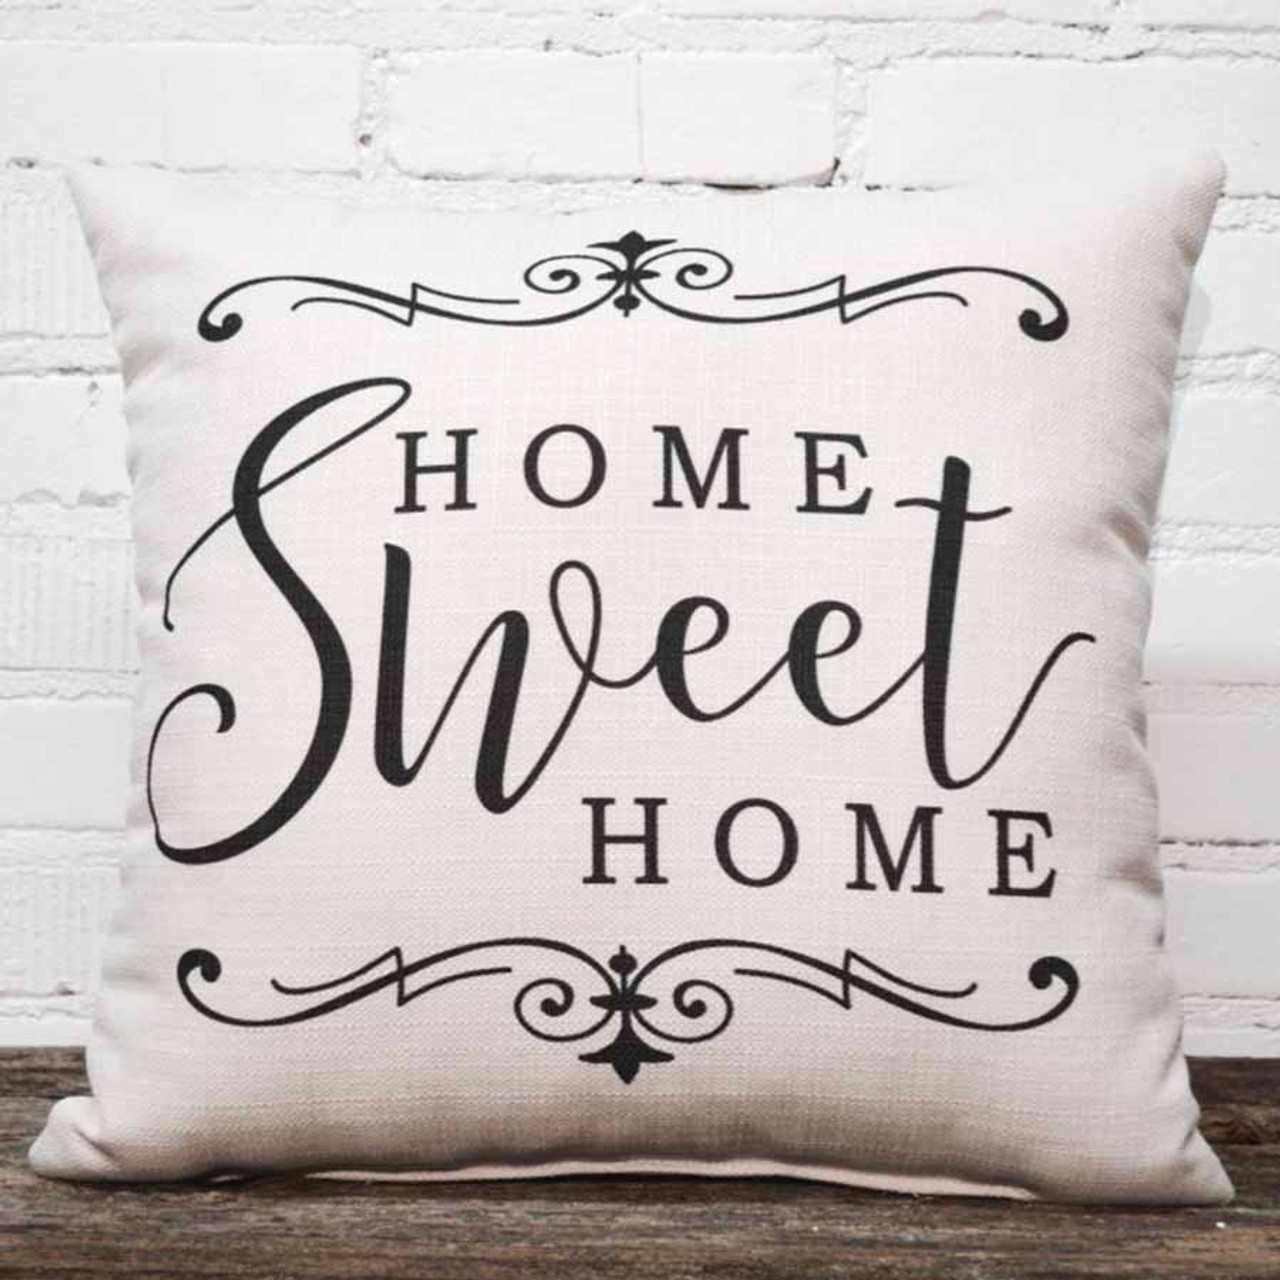 Home Sweet Home Pillow Robyns Lake House